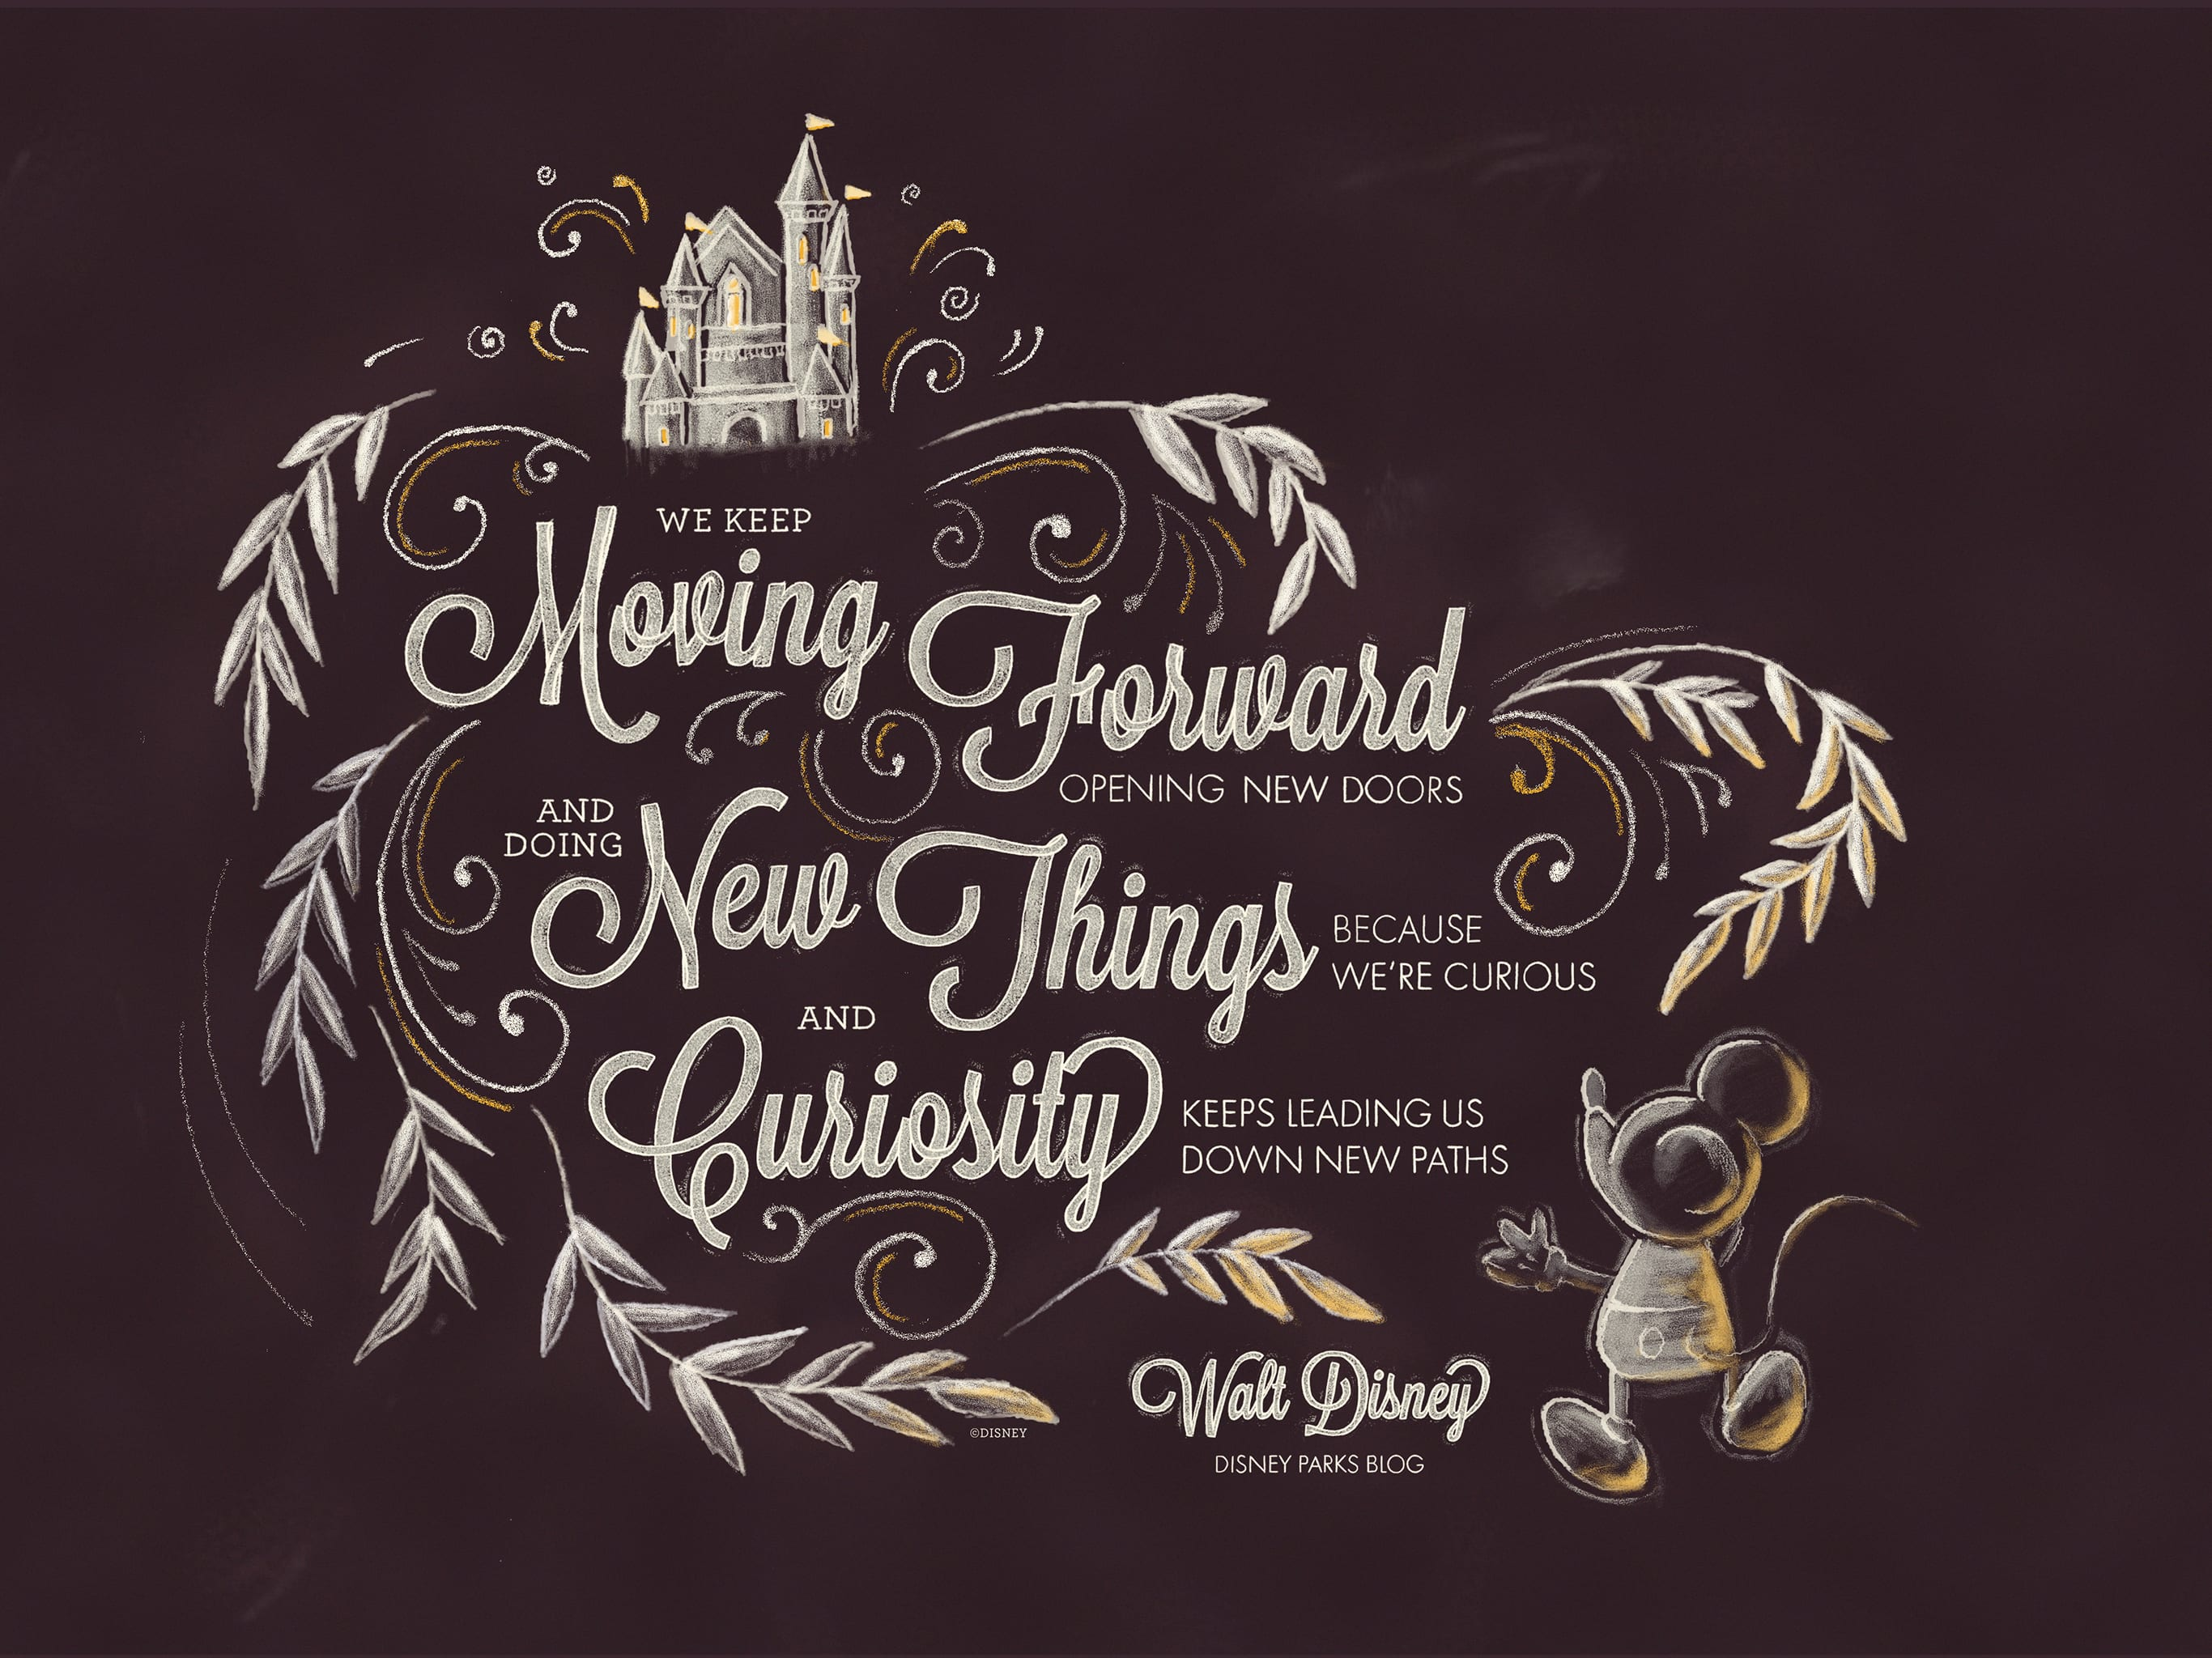 Exclusive Walt Disney Desktop Mobile Wallpaper Disney Parks Blog